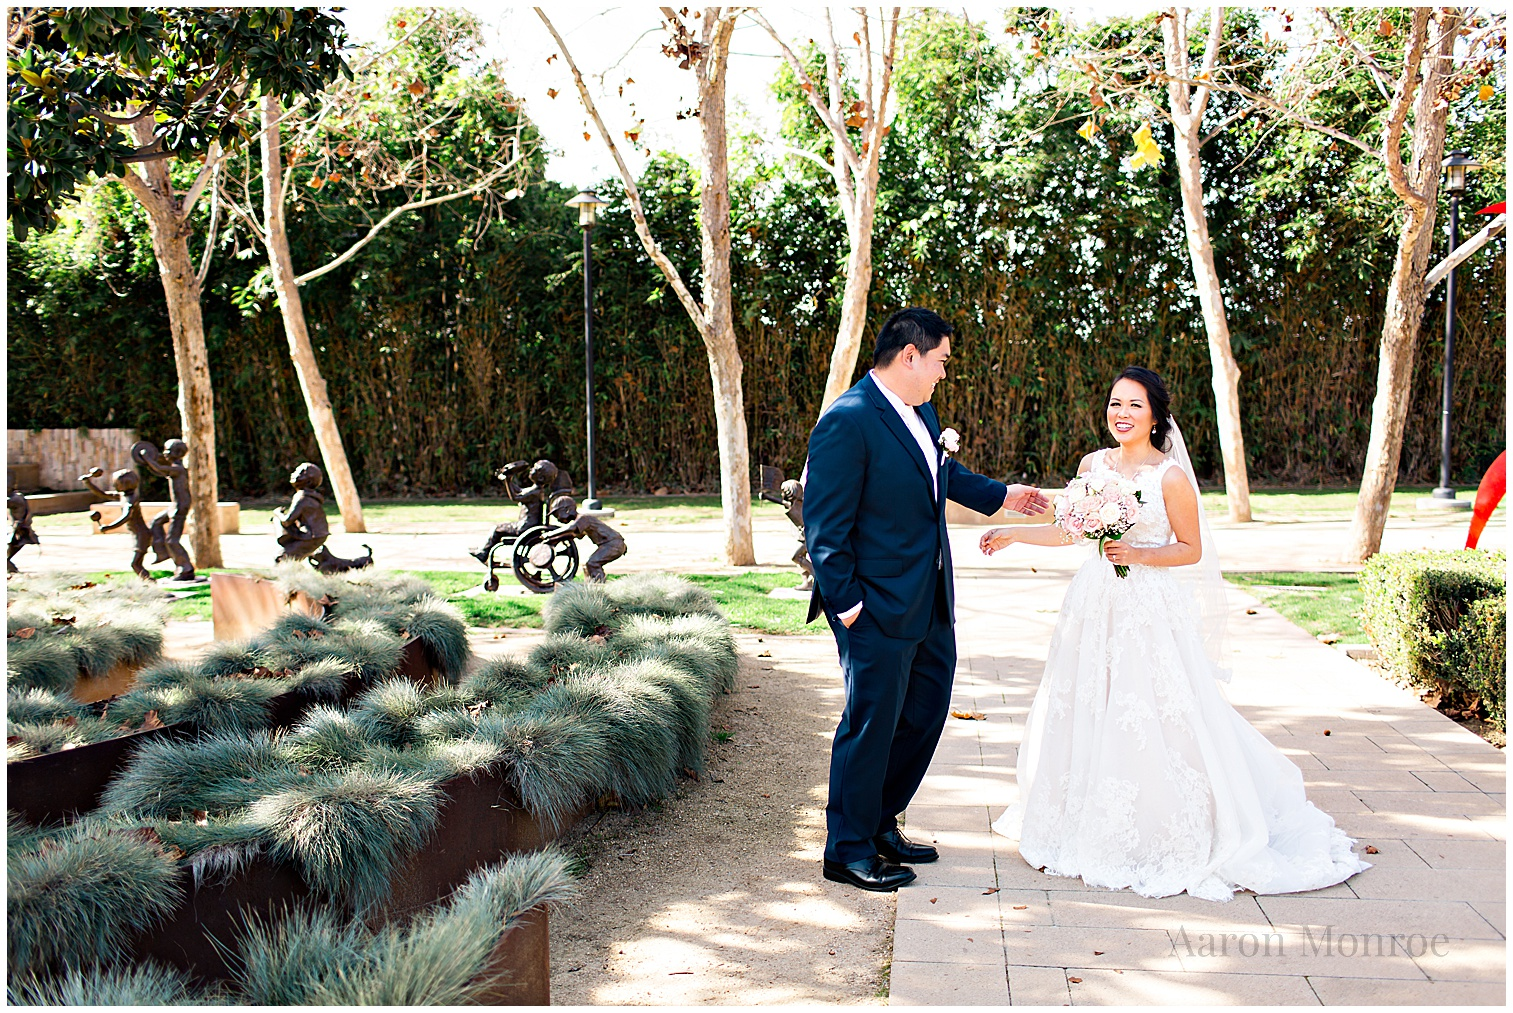 orange_county_wedding_photographer_0999.jpg